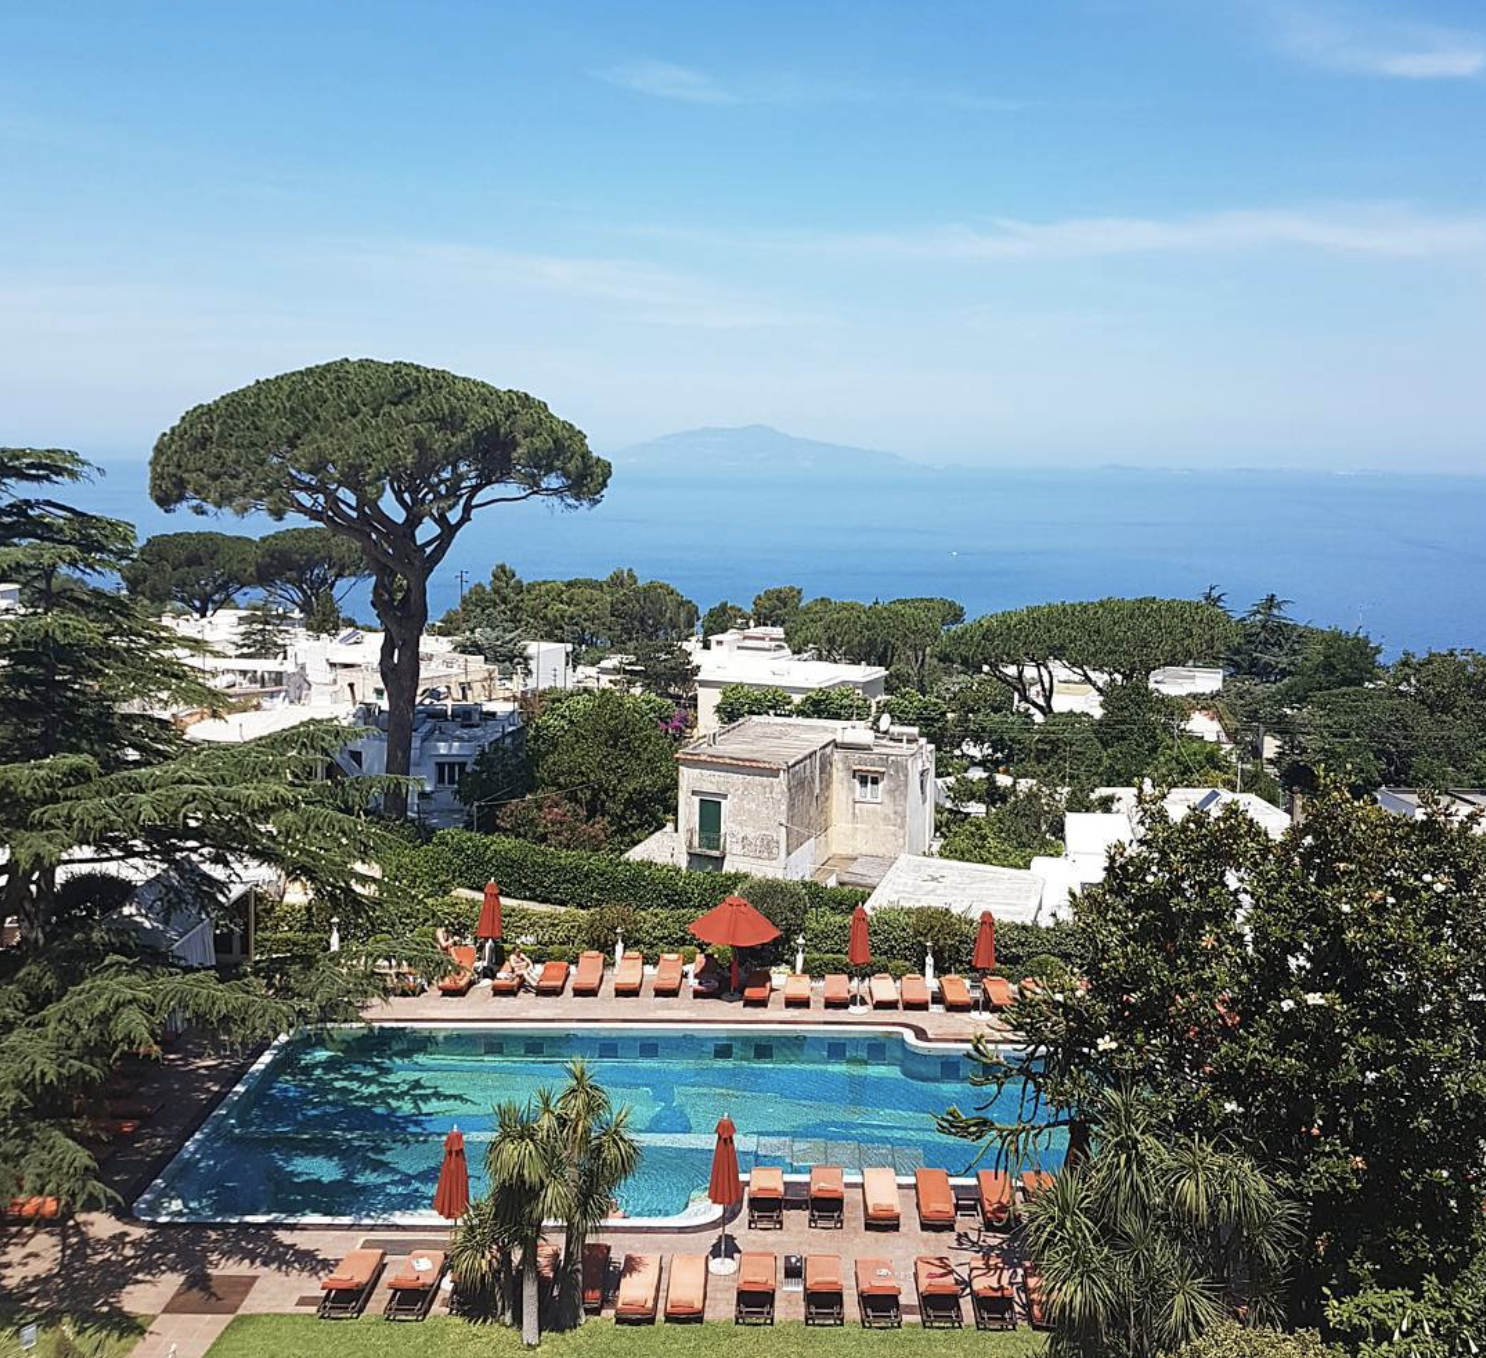 Check out Bodyism at Capri Palace Hotel and Spa on    Instagram